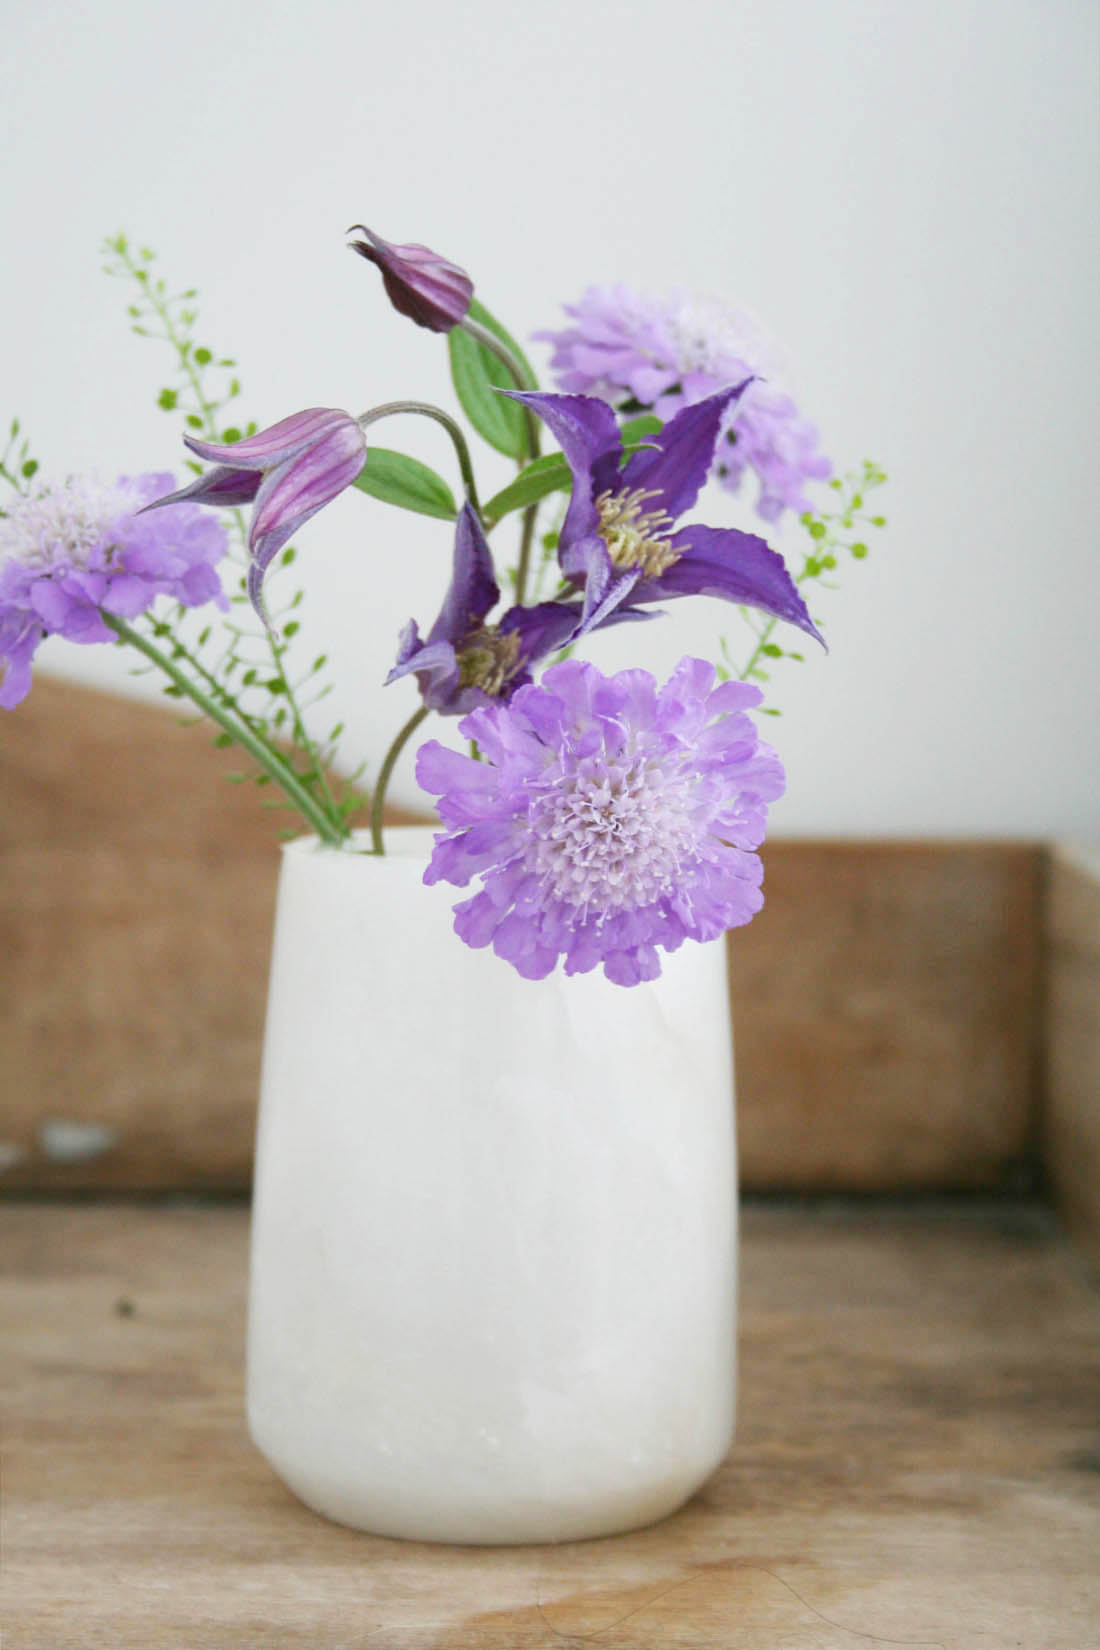 Dwell alabaster pot | Clematis and Scabius | Bedside table | Bedroom interior | Apartment Apothecary